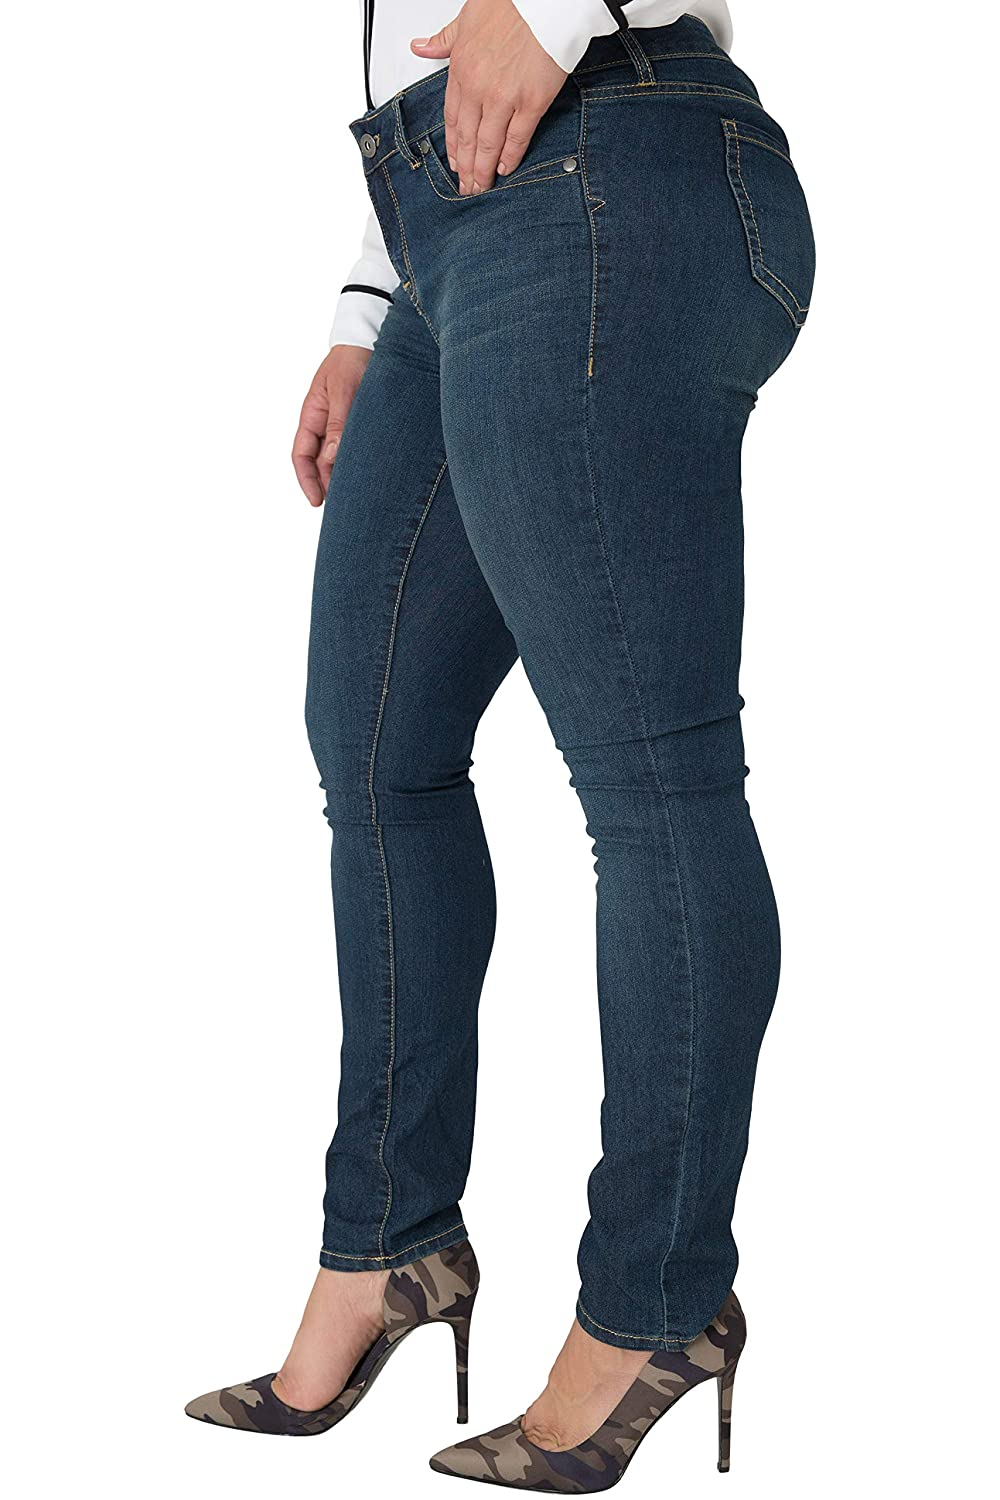 7210f781072 Miss Halladay Plus Size Women s Midrise Skinny Jeans Dark Sandblast Wash  Size 10 to 30 at Amazon Women s Jeans store